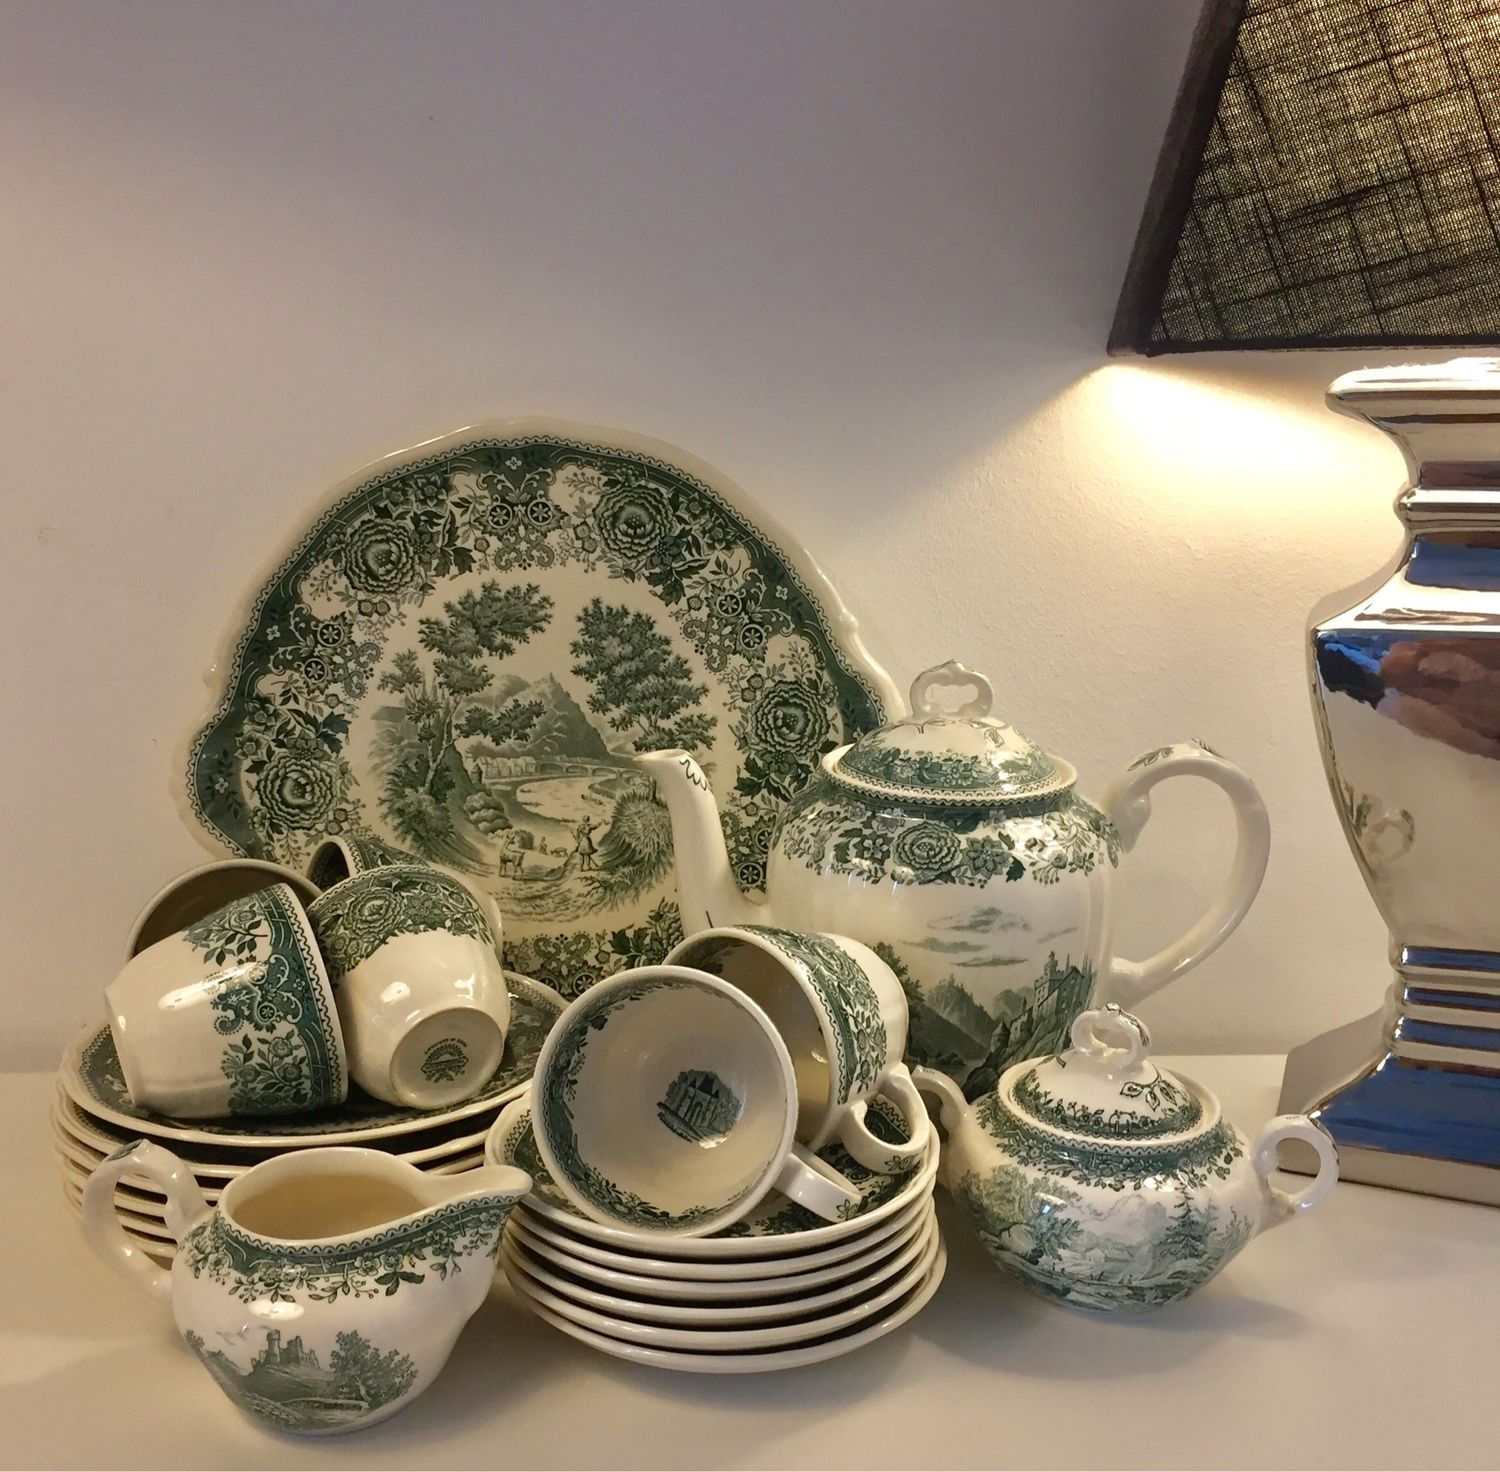 villeroy und boch online trendy new dinnerware for